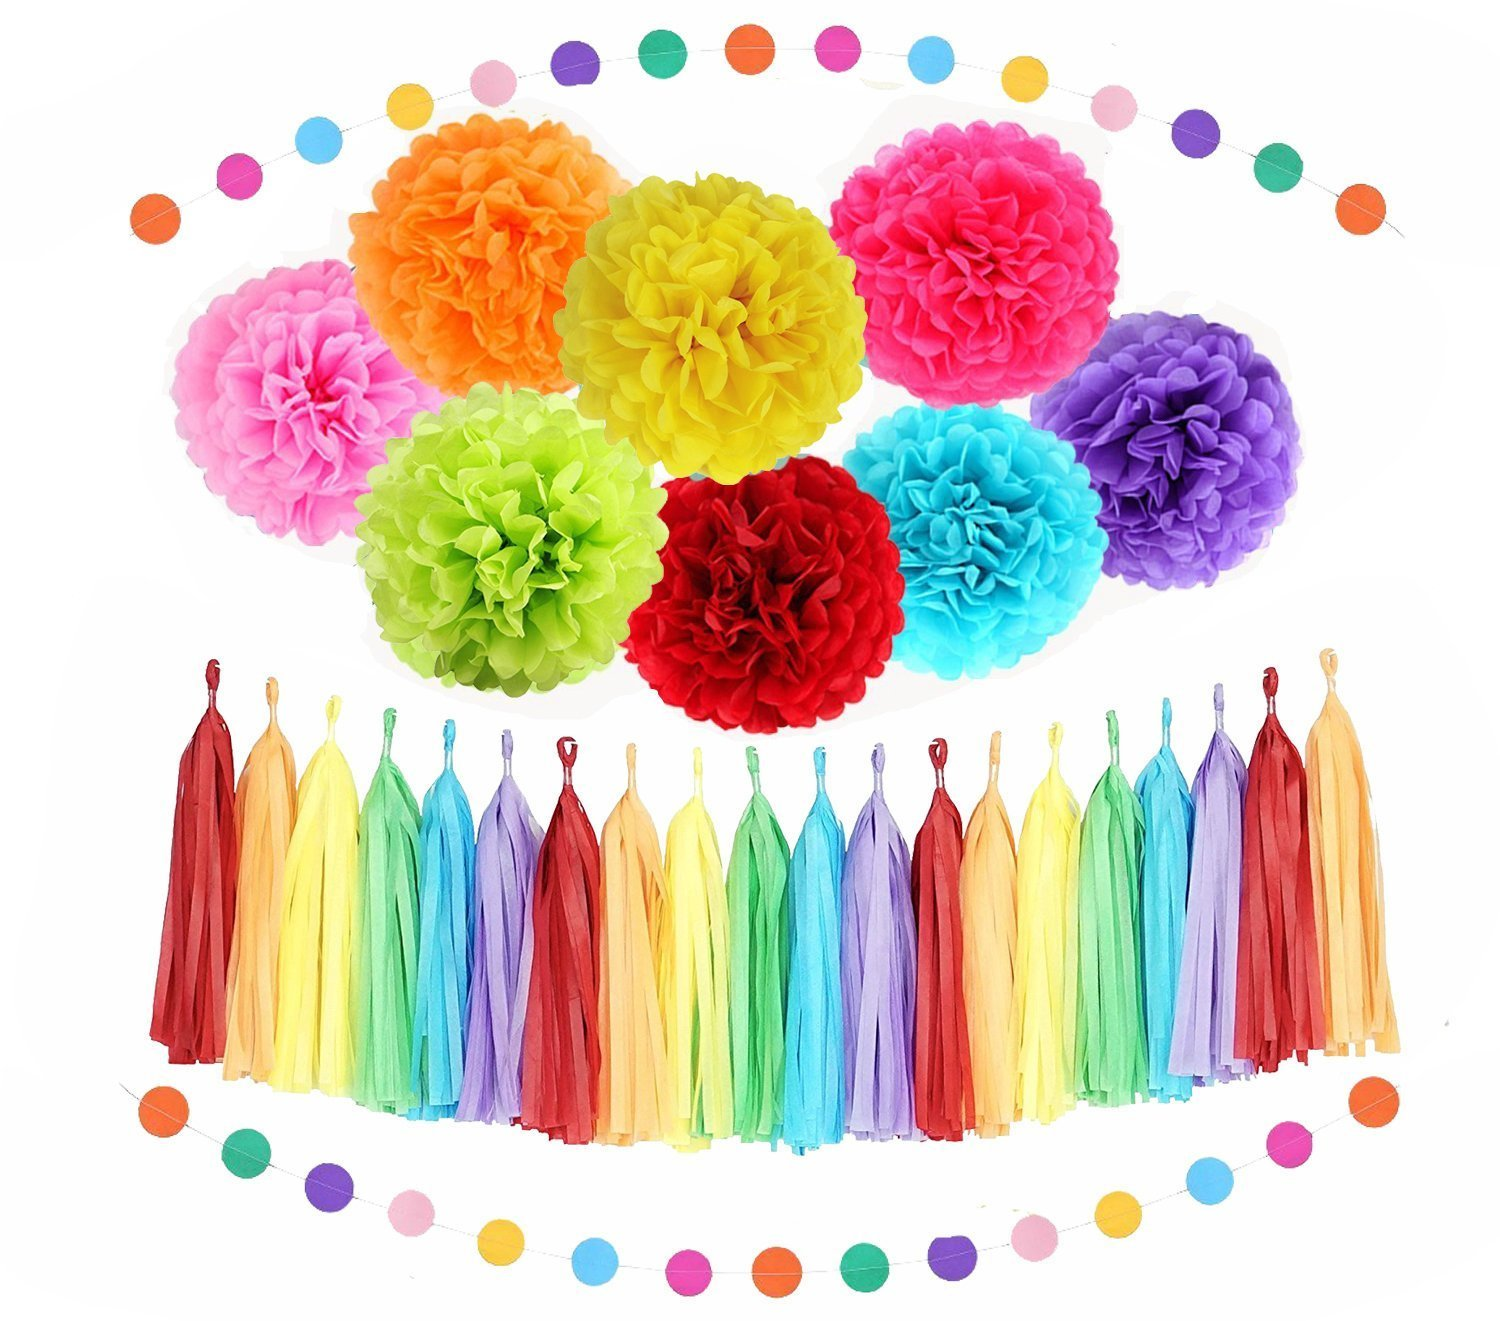 Sopeace Assorted Rainbow Colors Tissue Paper Pom Poms Flower Balls Papers Lanterns Circle Garland Multi Color Theme for Birthday Wedding Christening Party Decorations